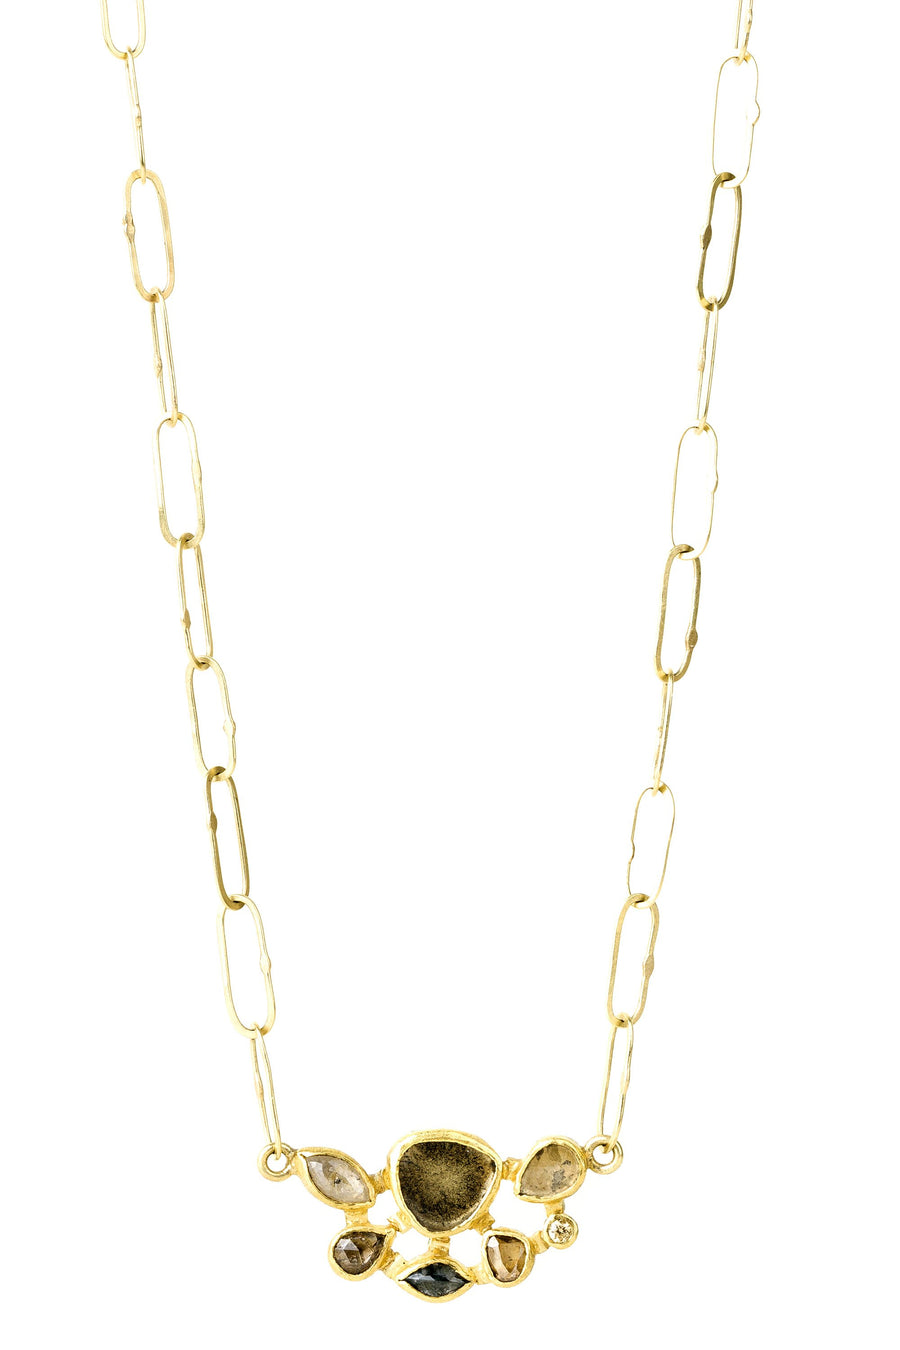 Diamond Necklace - 22k + 18k Gold